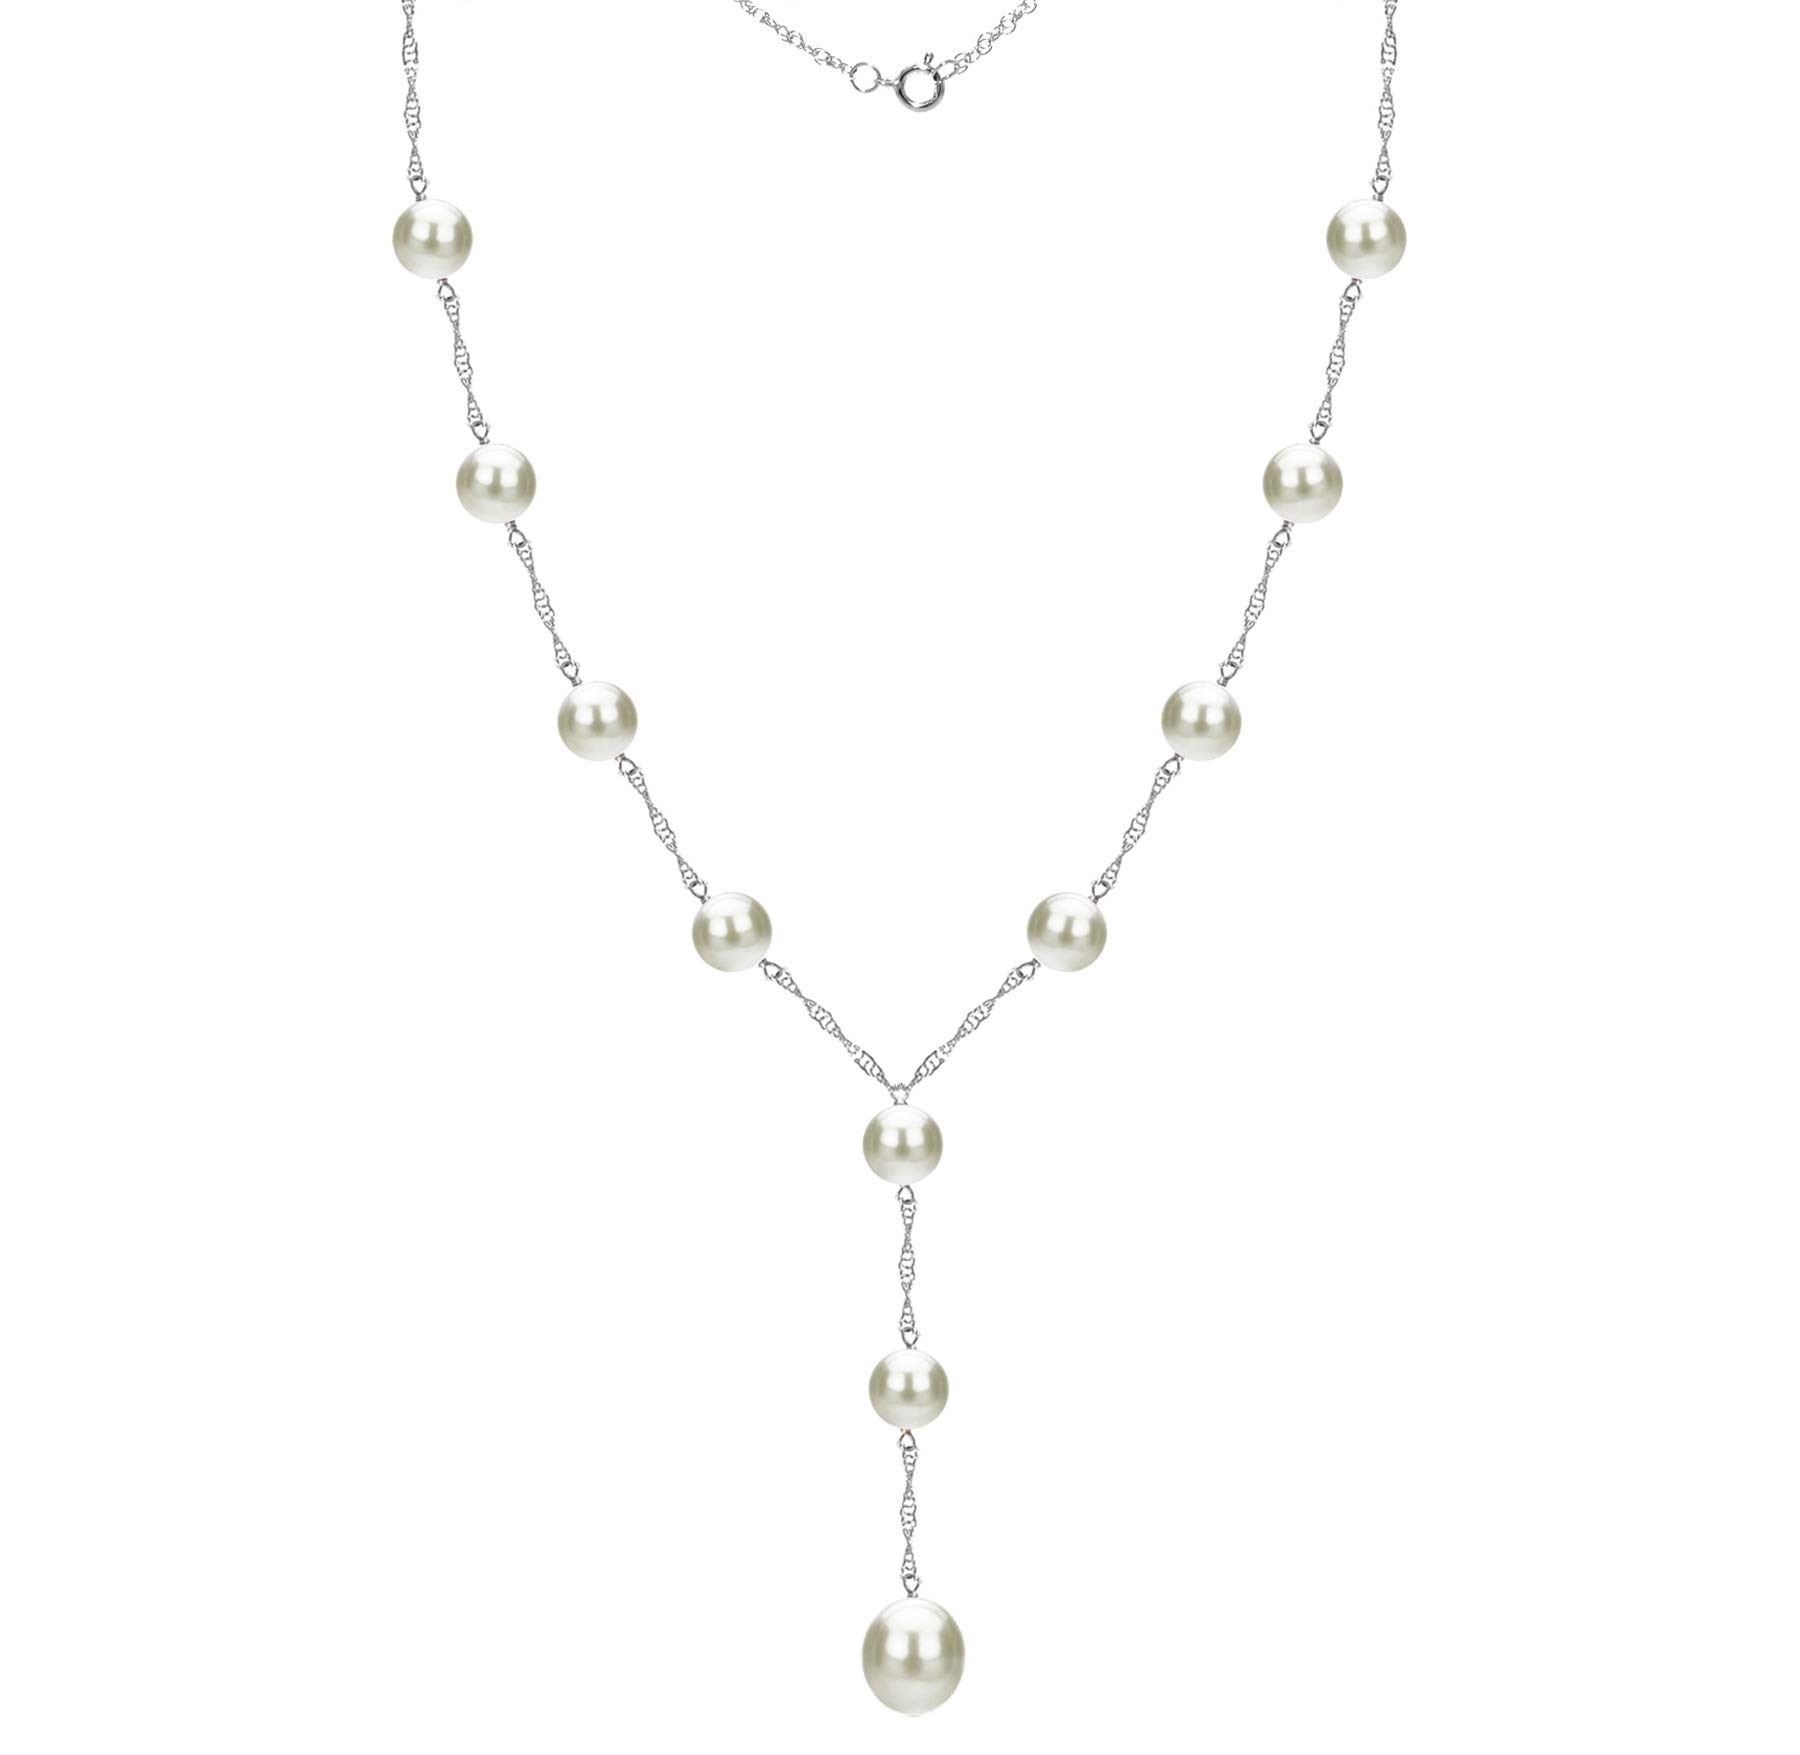 14k White Gold 8-8.5mm and 9-9.5mm White Freshwater Cultured Pearl Station Necklace, 24'' + 2'' Drop by La Regis Jewelry